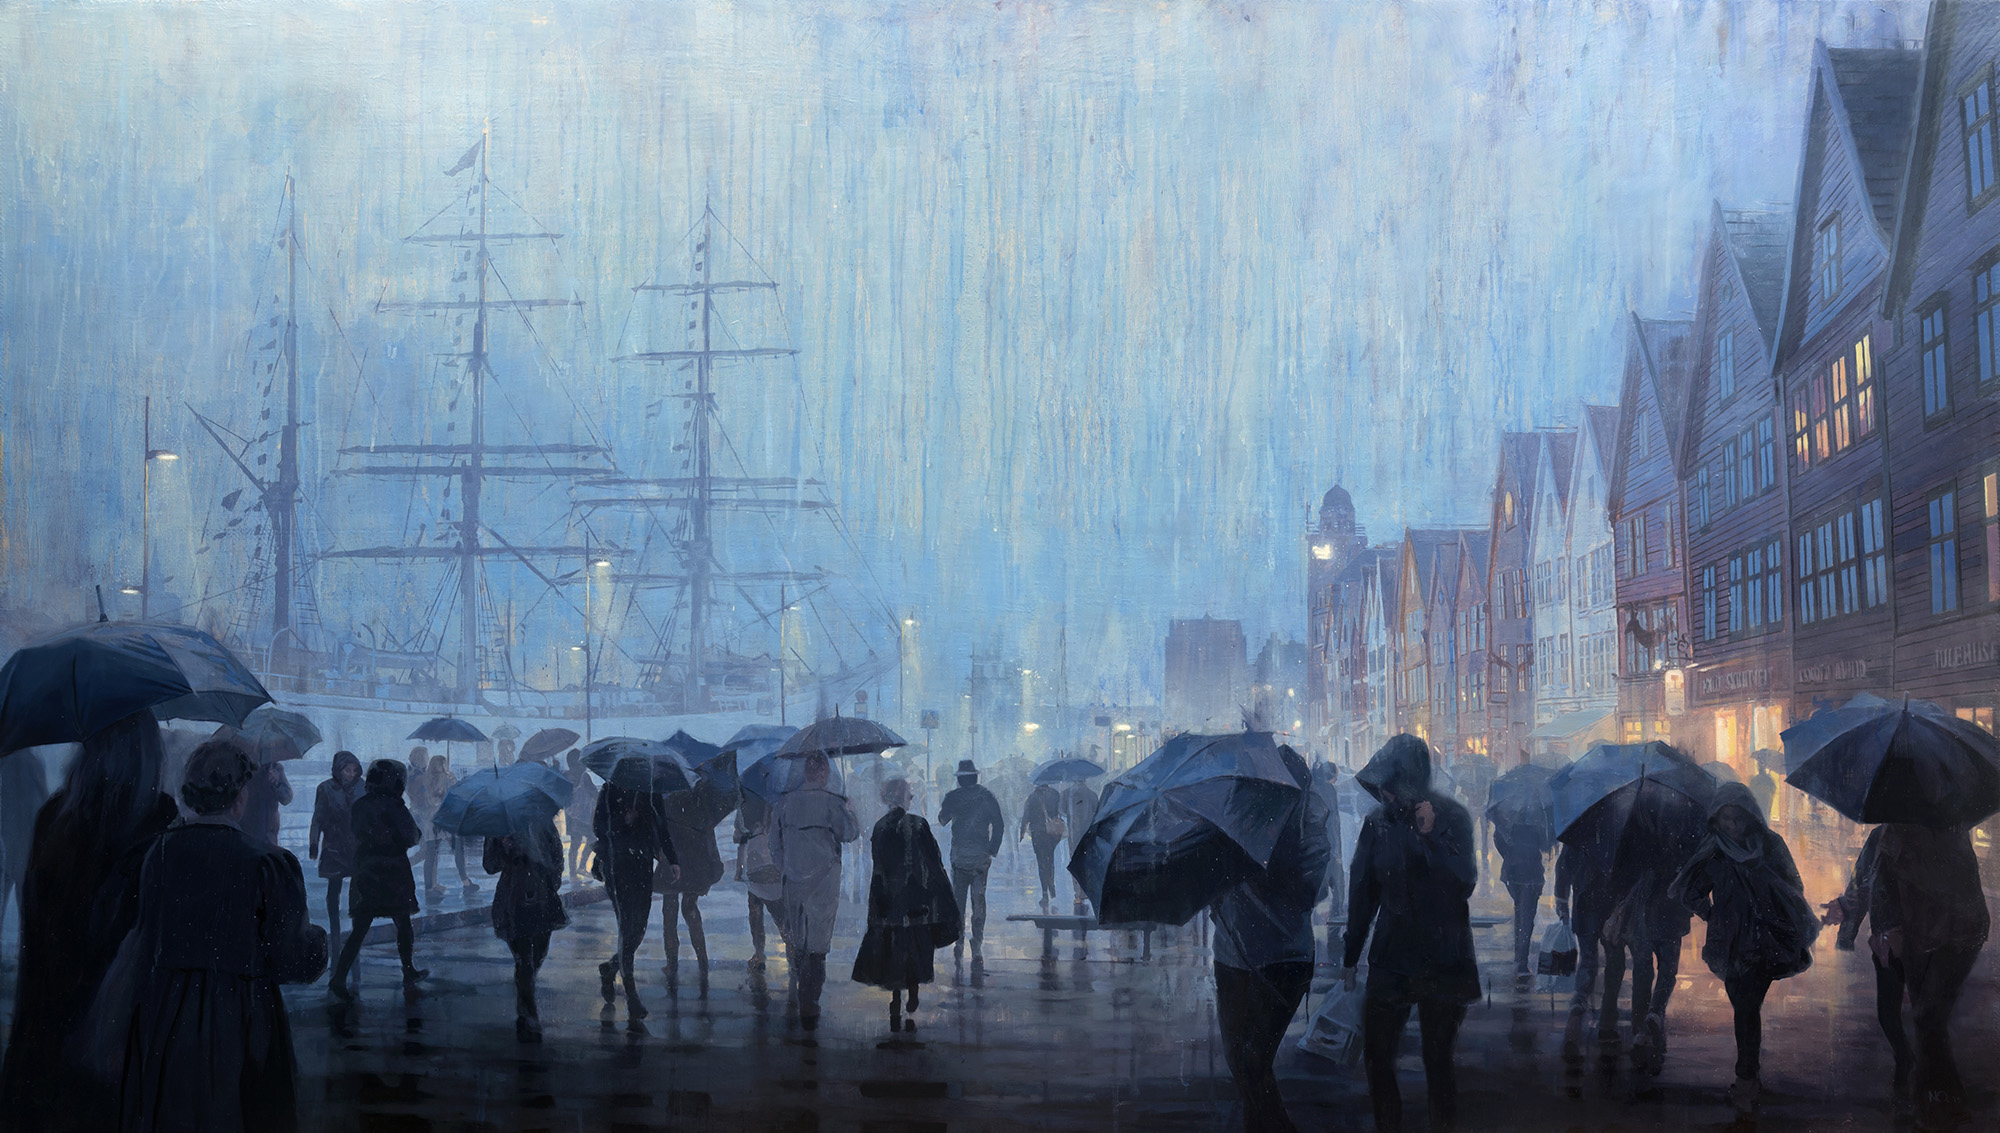 Soft Rain, oil on canvas,150 x 85 cm, 2015